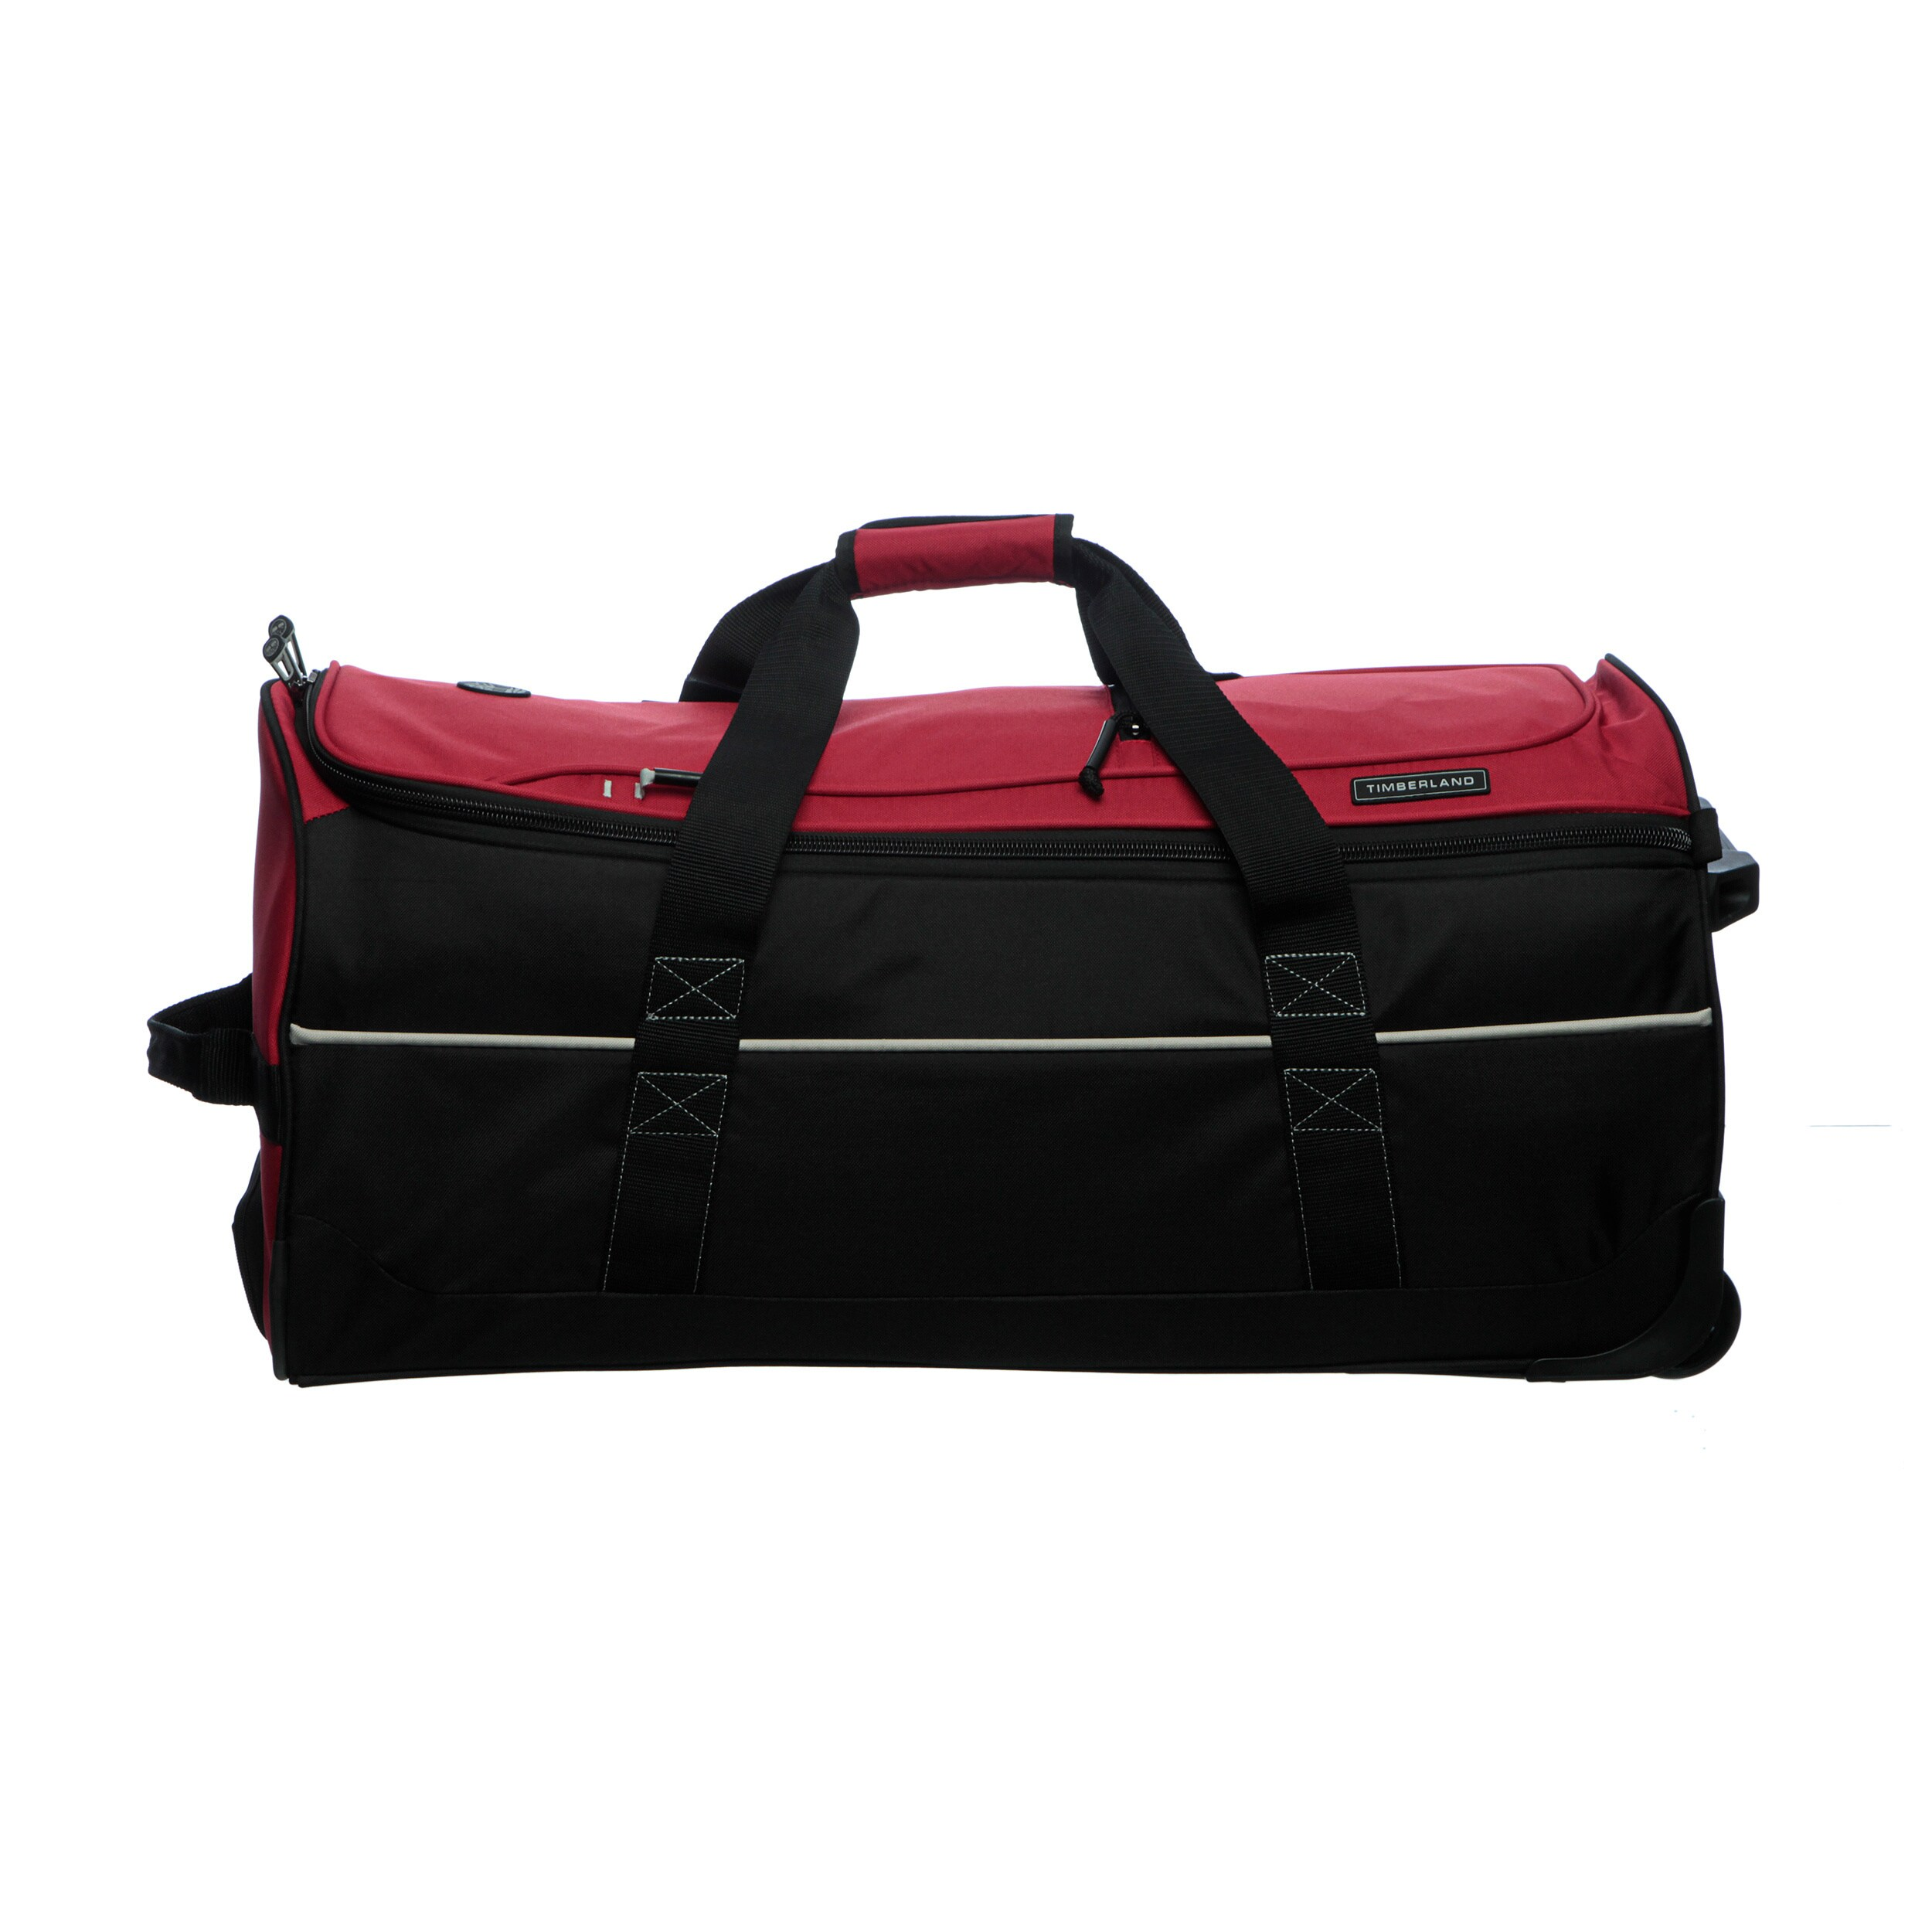 3c48665c99 Shop Timberland Claremont 28-inch Wheeled Upright Duffel Bag - Ships To  Canada - Overstock.ca - 7731968